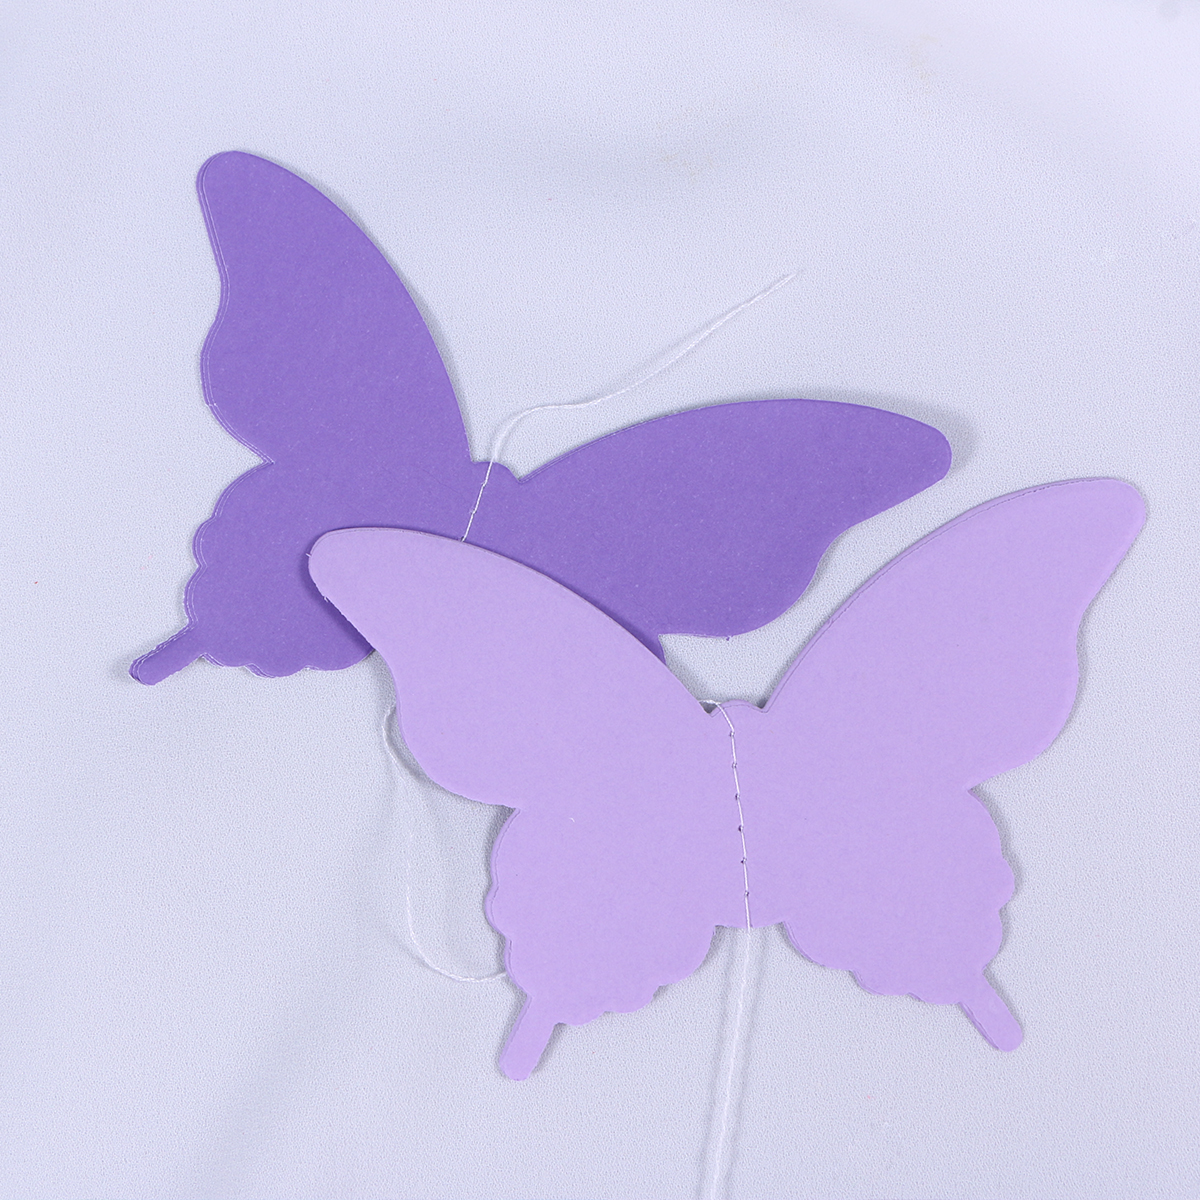 3m/9.8ft Paper Garland Butterfly Banner 3D Butterfly Bunting Garland for Wedding Birthday Party Baby Shower